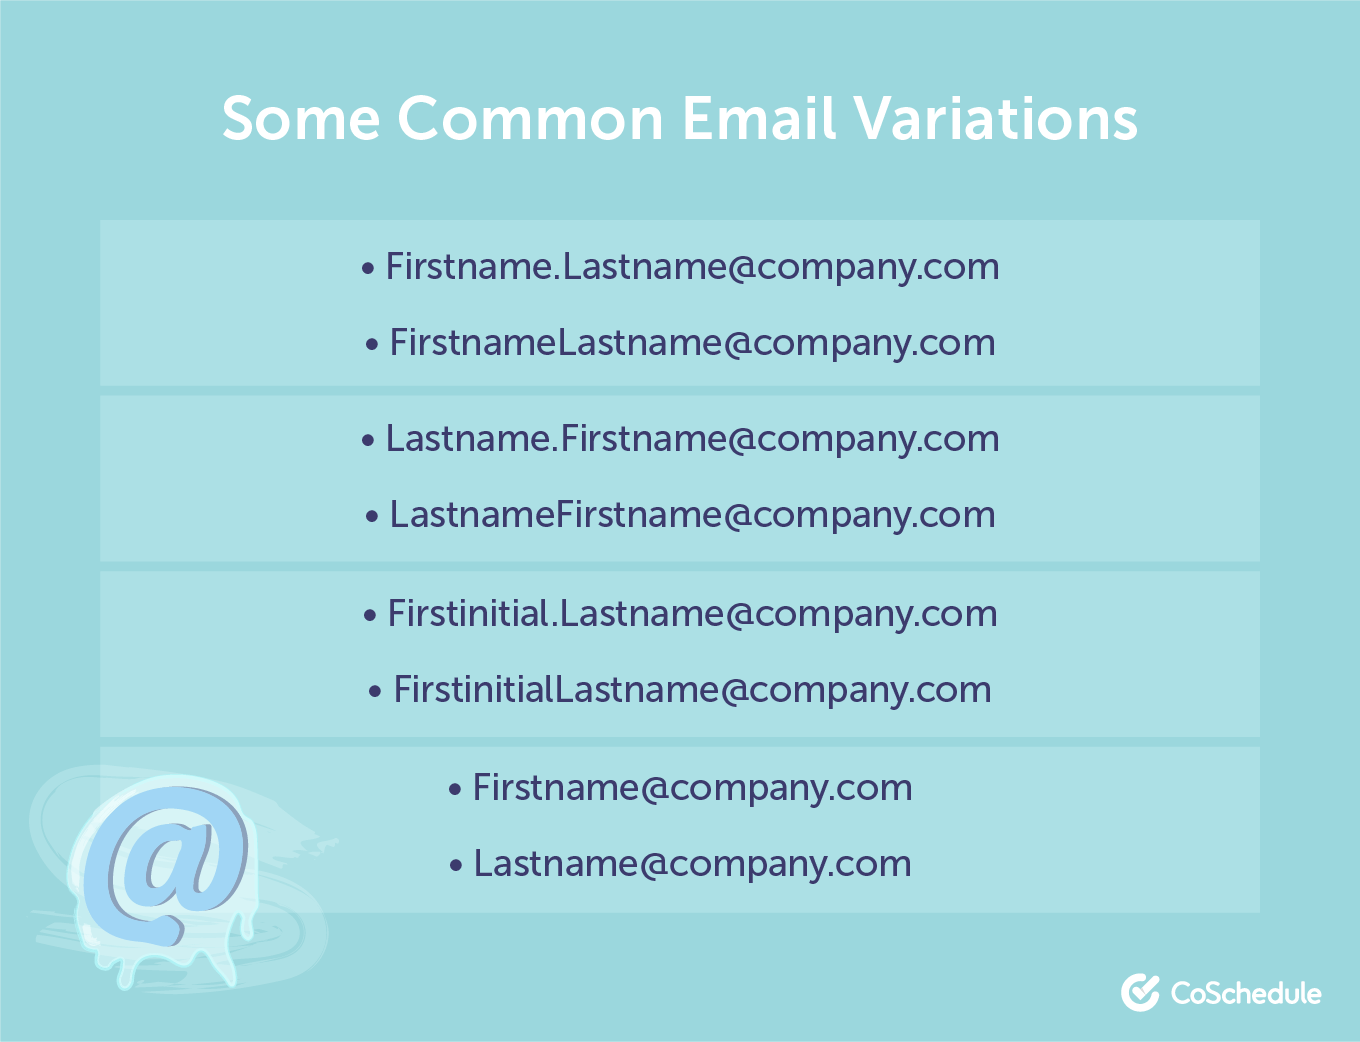 Email variations for cold emailing